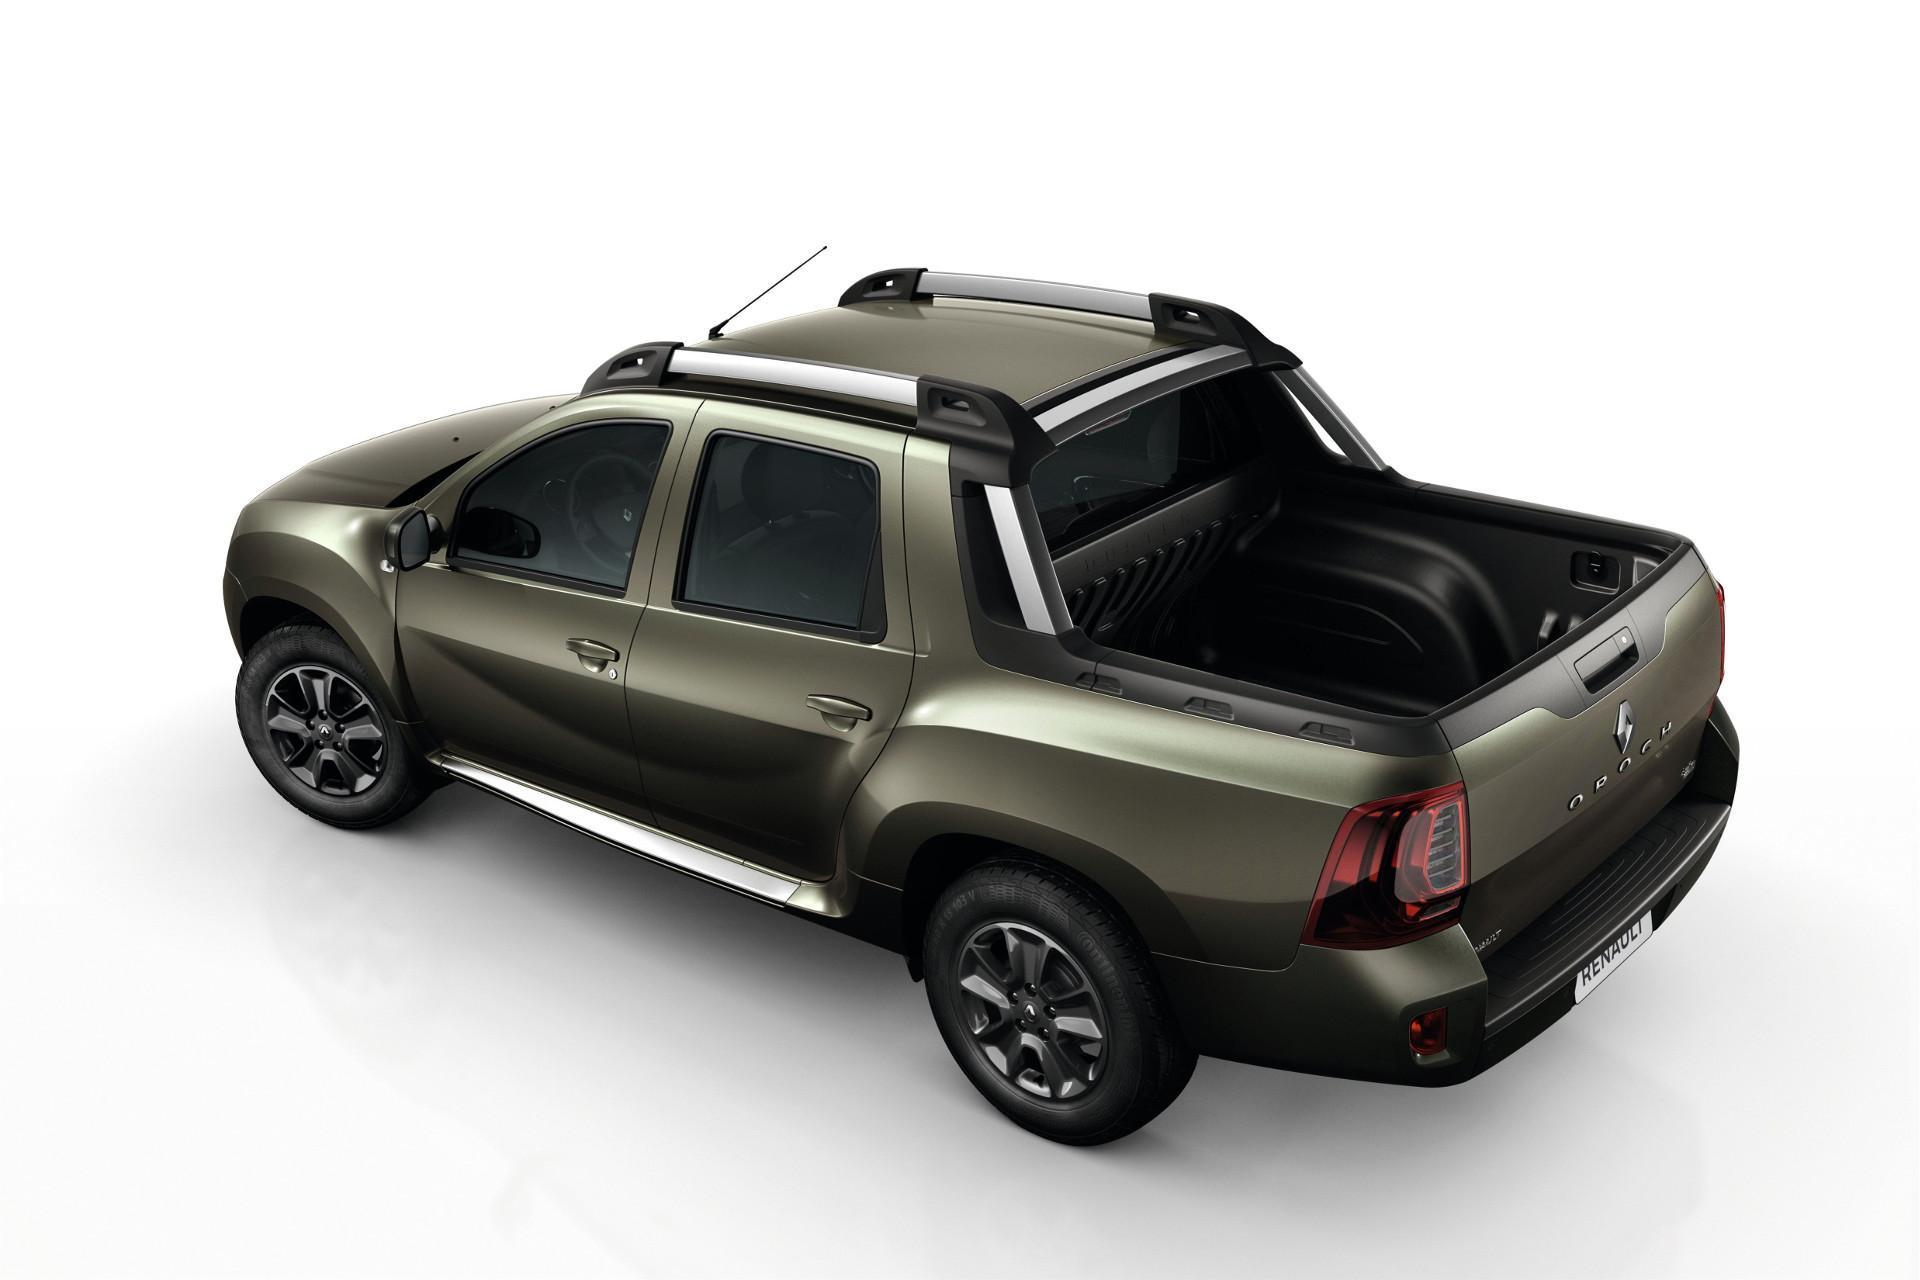 weltpremiere f r pick up renault duster oroch. Black Bedroom Furniture Sets. Home Design Ideas